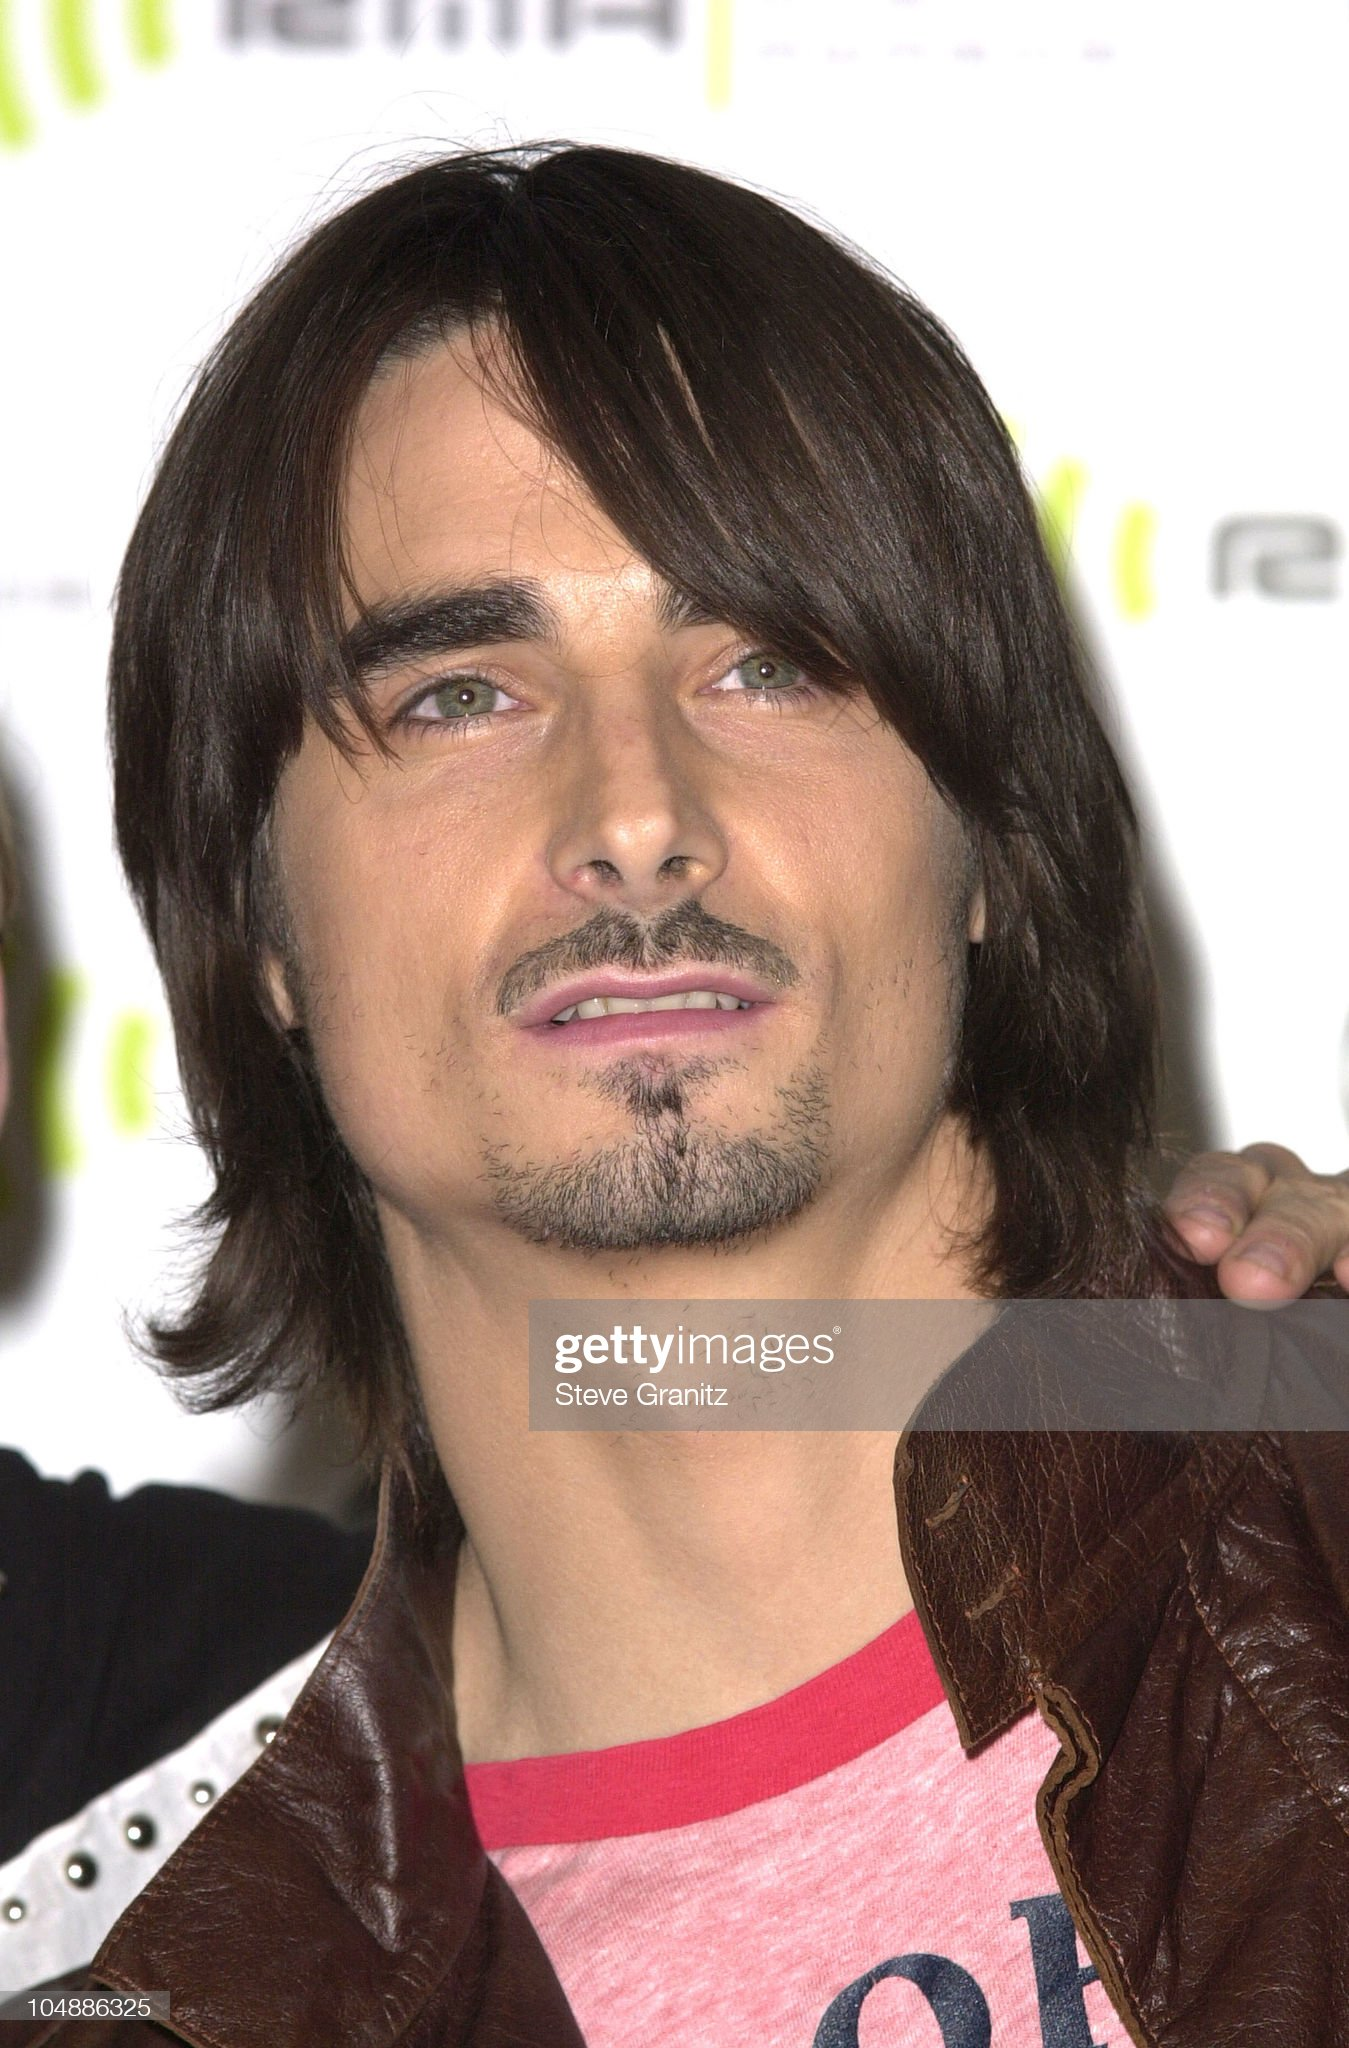 Ojos verdes - Famosas y famosos con los ojos de color VERDE Kevin-richardson-of-backstreet-boys-during-the-2000-radio-music-at-picture-id104886325?s=2048x2048